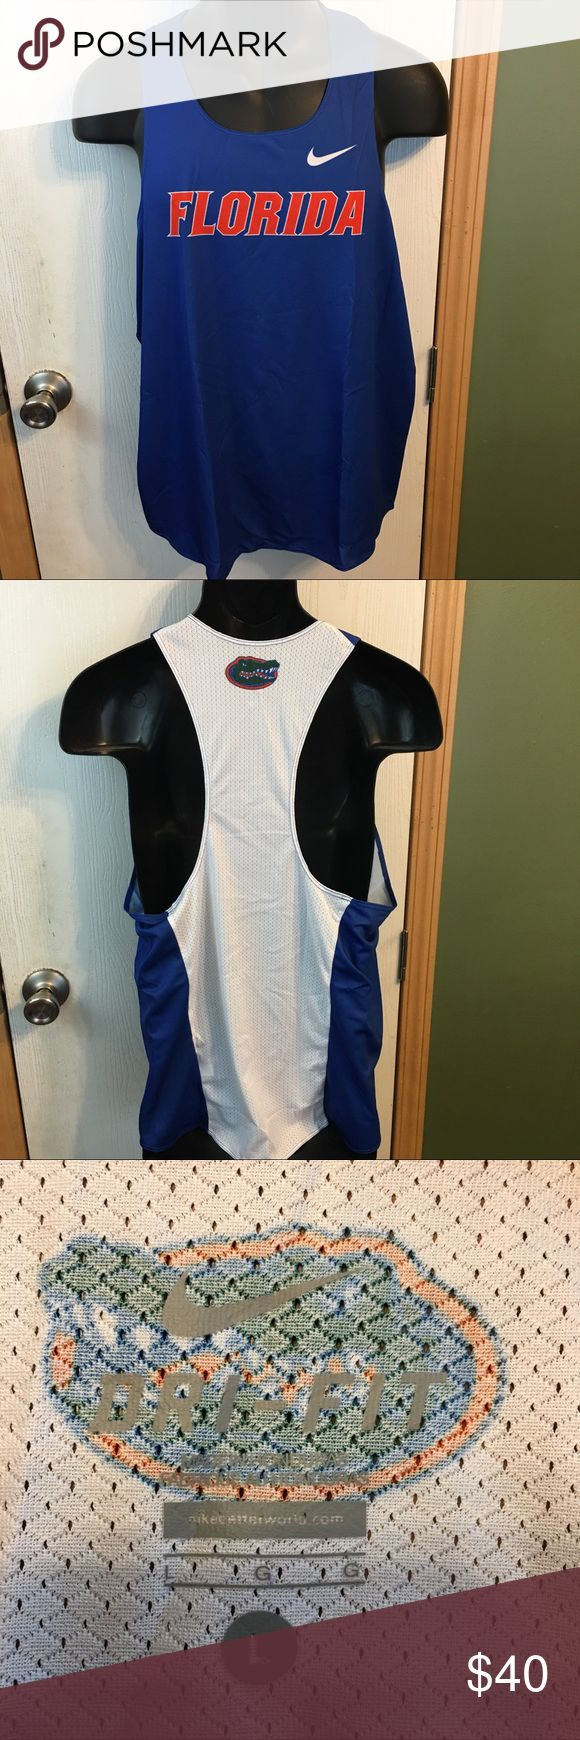 NWT Men's Florida Gators Nike Track Shirt Size L This is a Mens NWT University of Florida Gators Nike Dri-Fit Digital Race Day Singlet Size Large. This Track and Field Shirt  is new and has never been worn and is in excellent condition. Please take a look at all photos for condition and if you have any questions feel free to ask. Nike Shirts Tank Tops